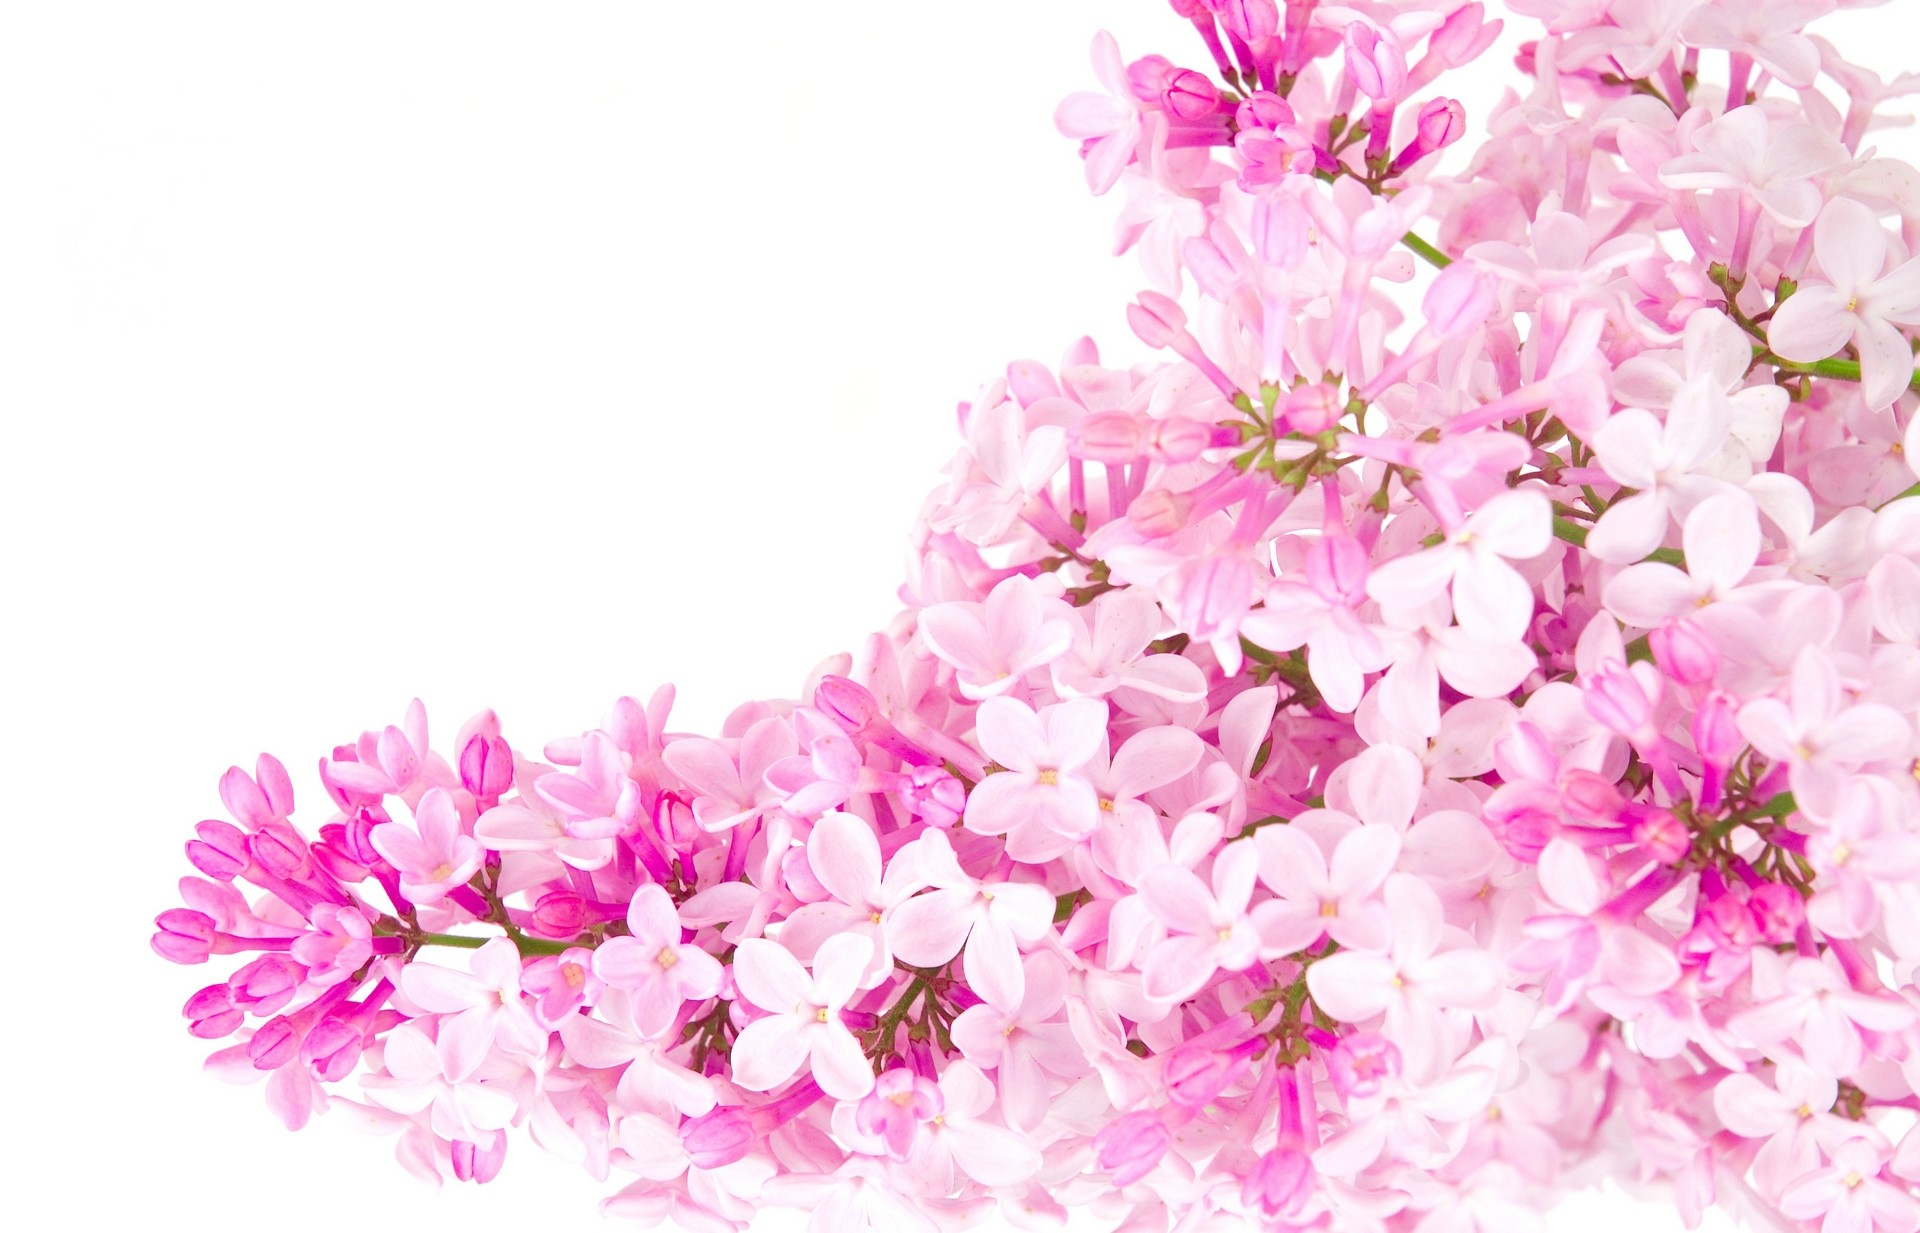 Pink Color Images Pink Flowers Hd Wallpaper And Background Photos